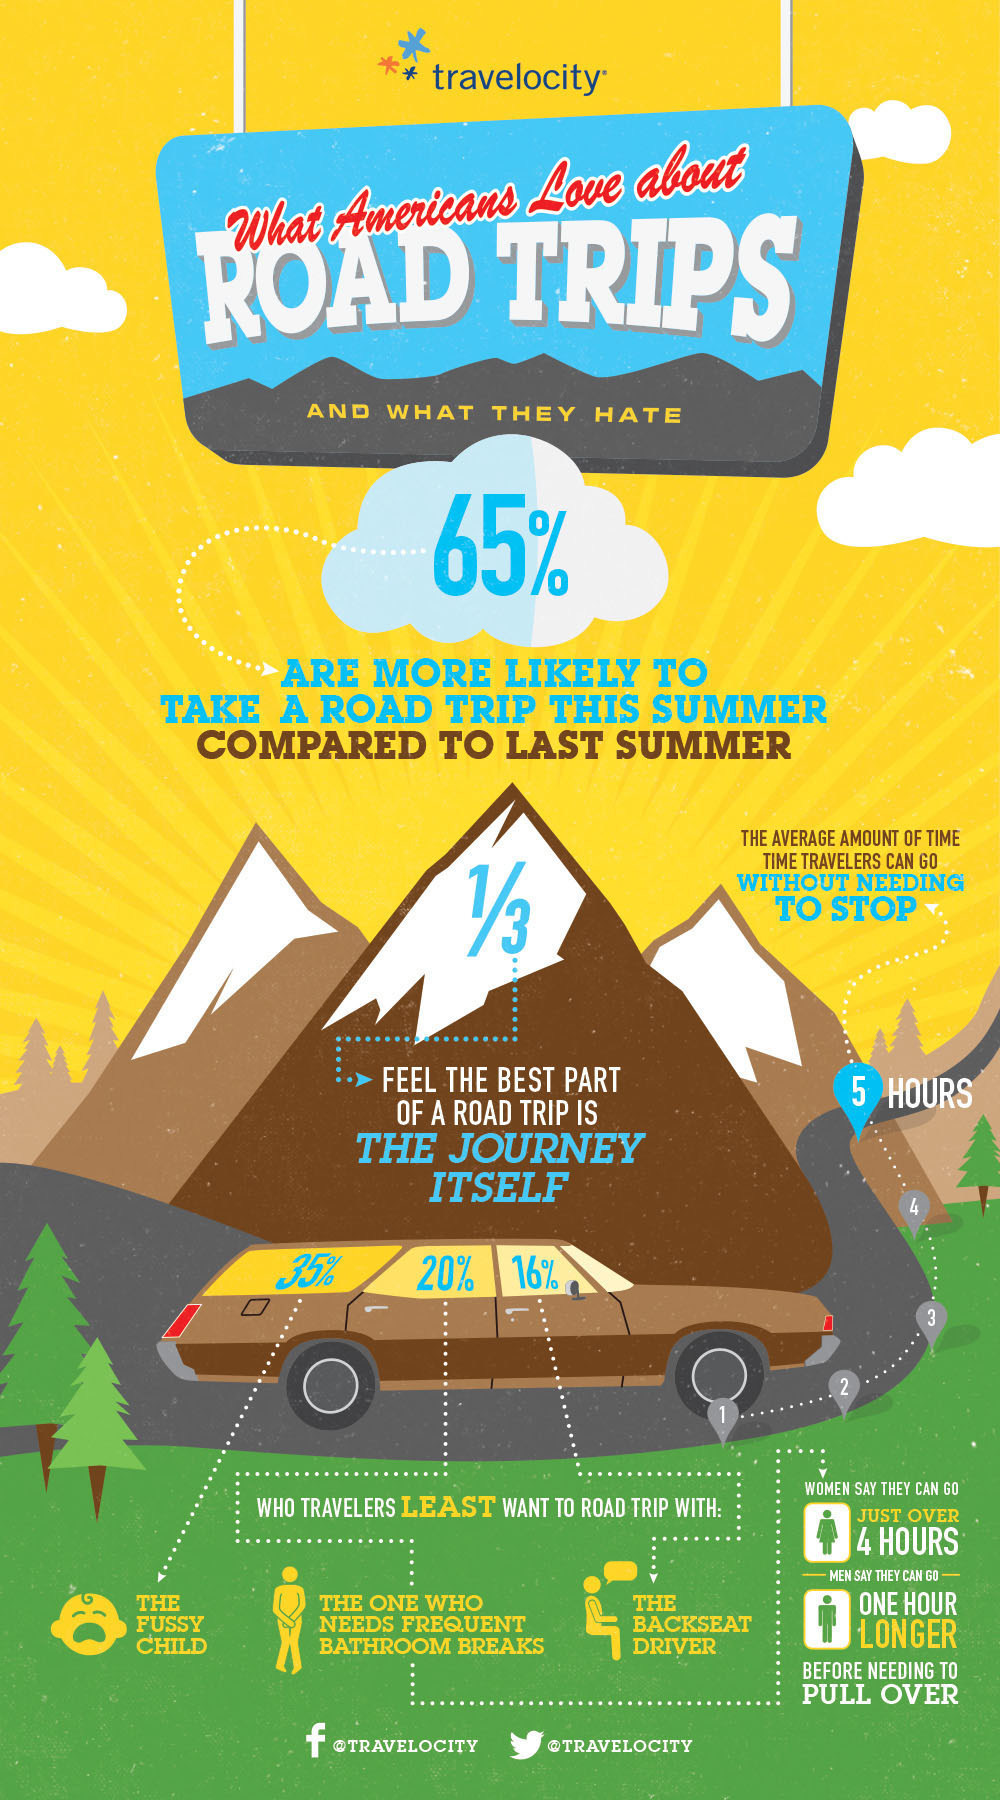 Travelocity Road Trip Infographic